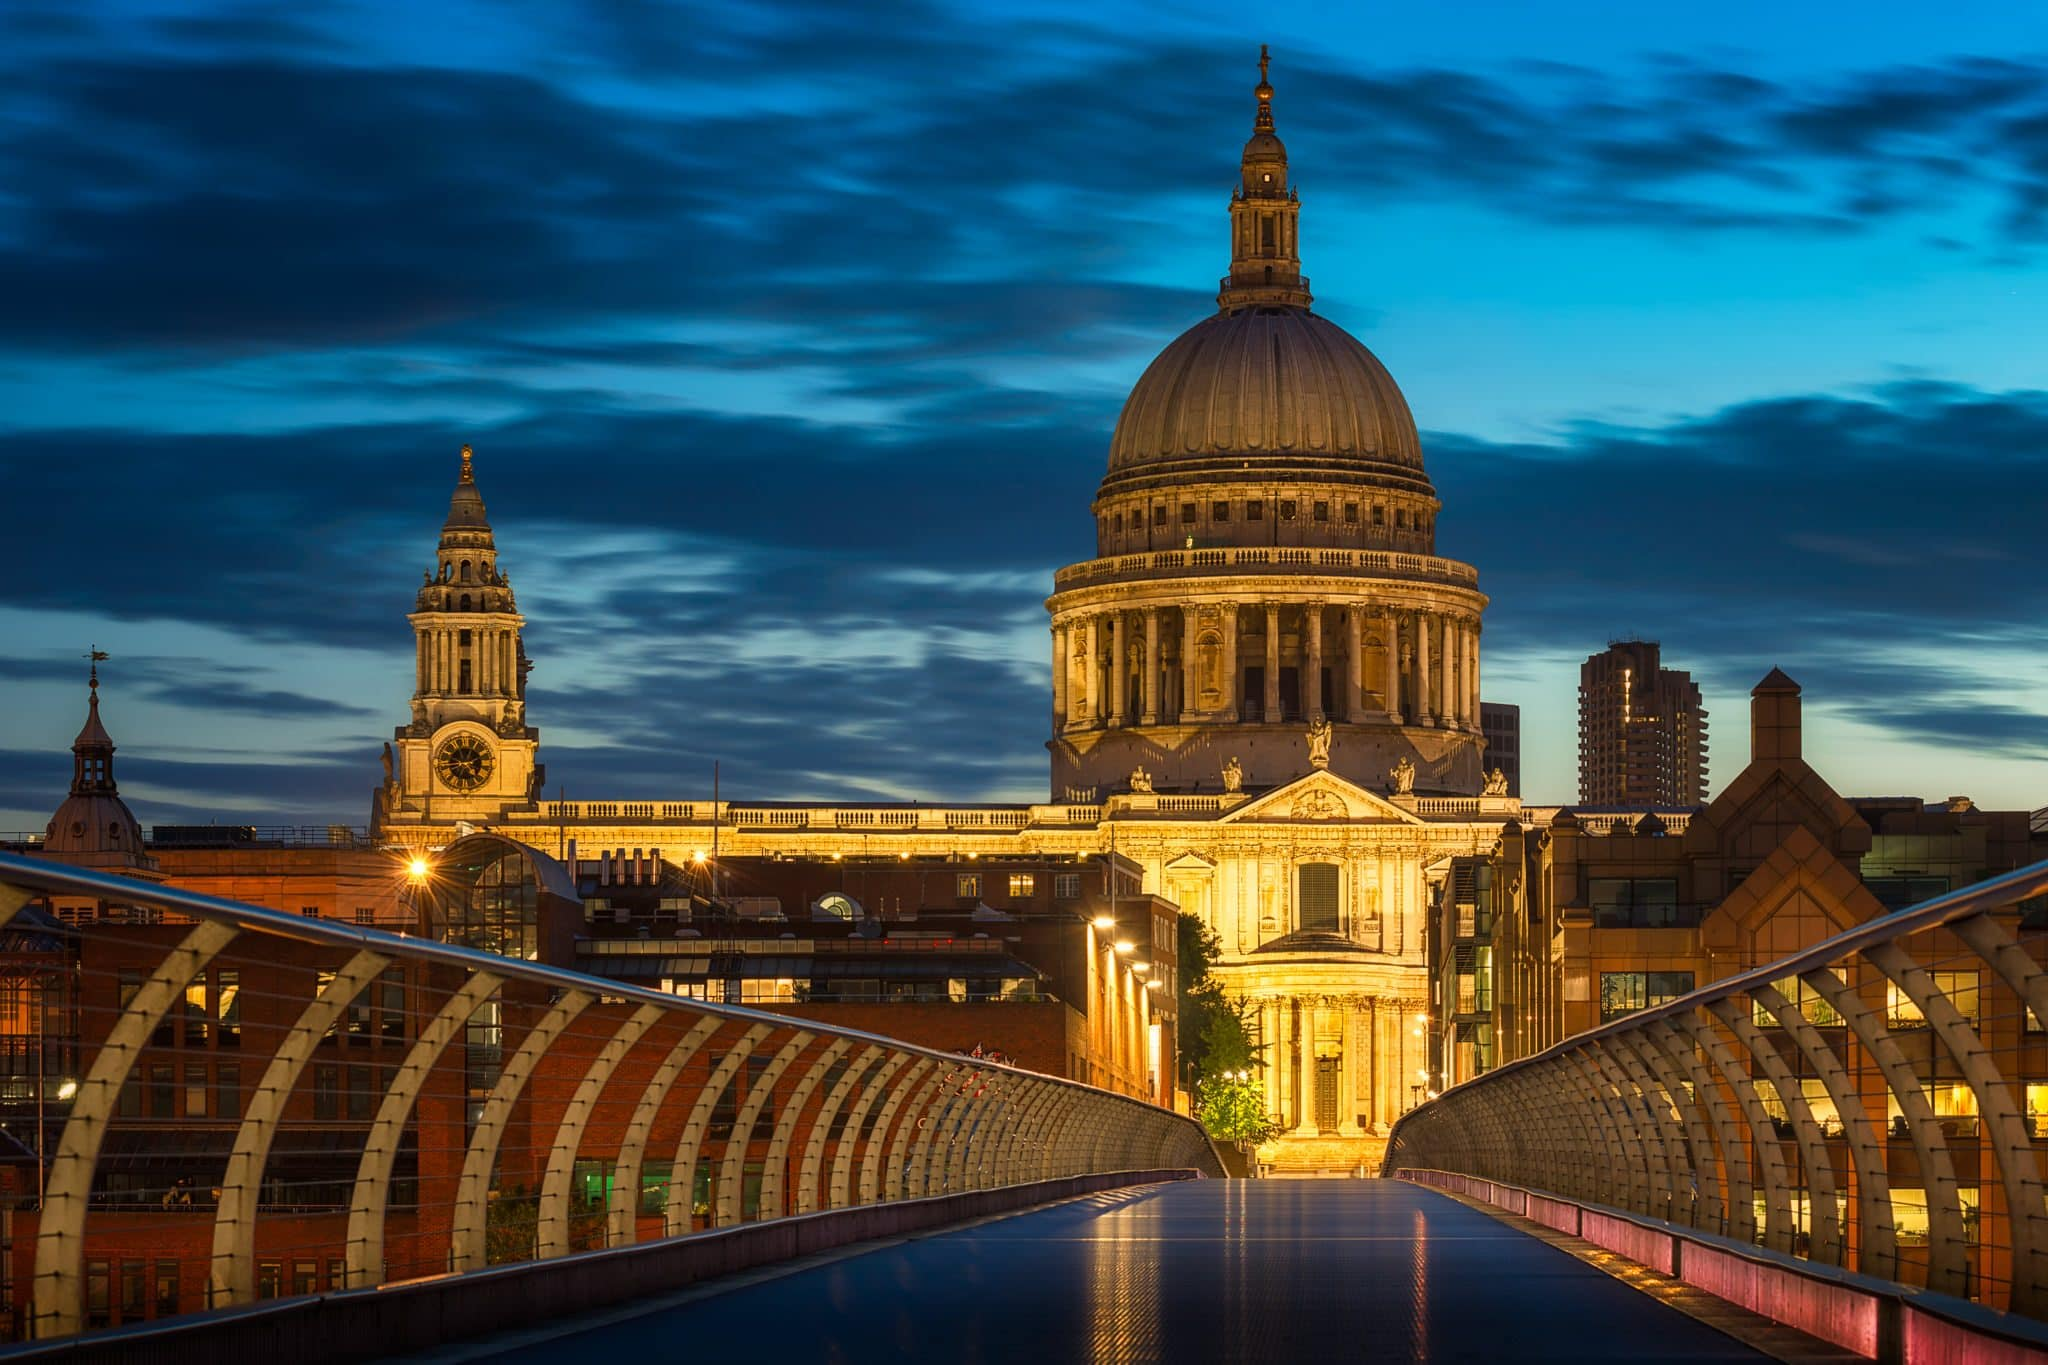 Sunrise on London Millennium Bridge with St. Paul's Cathedral in the background, England